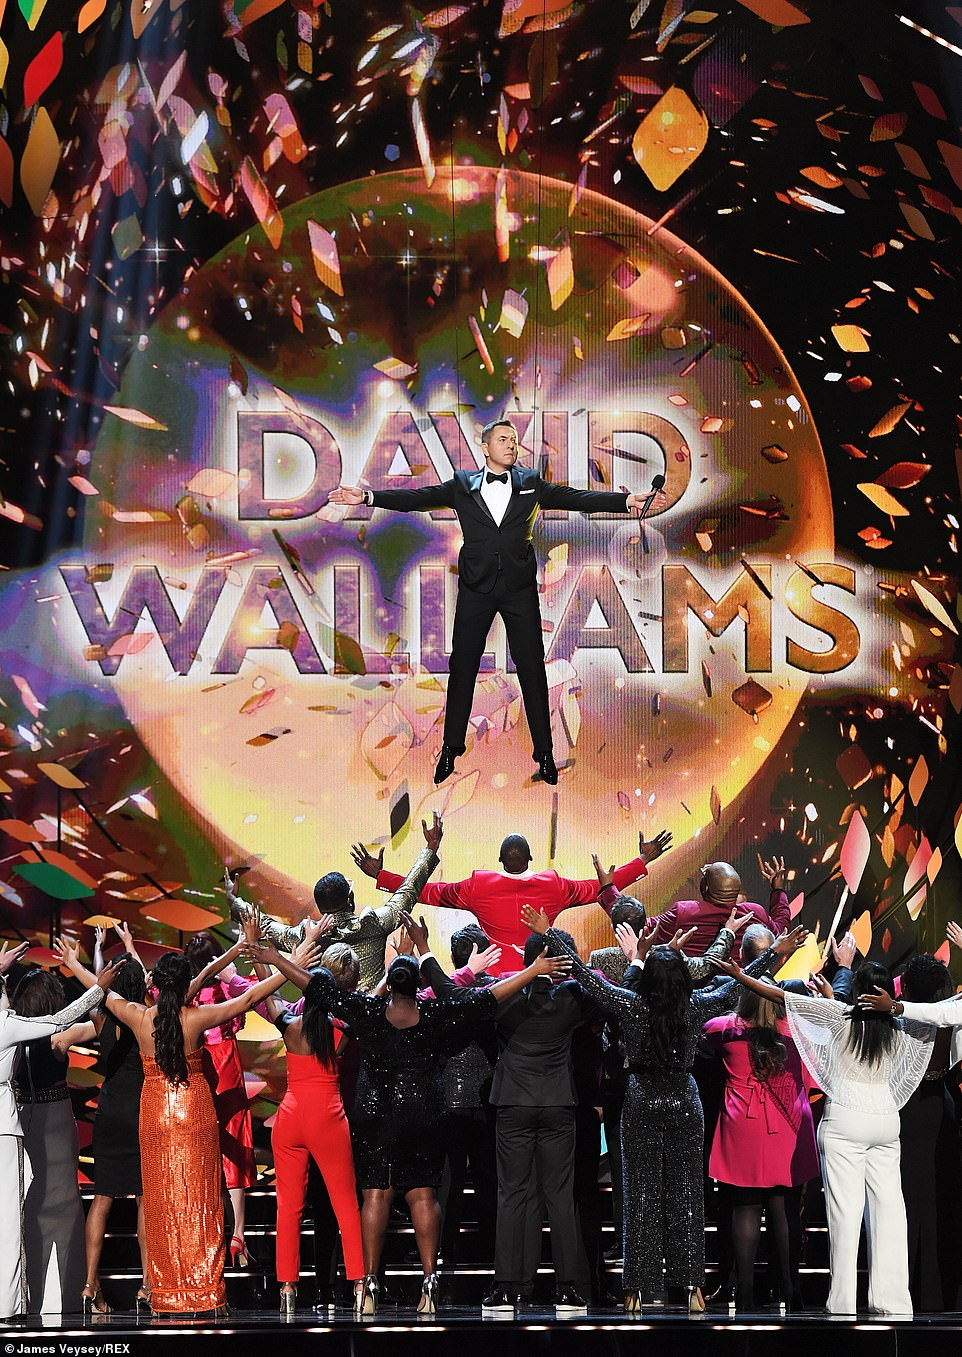 The Walliams Show!David has taken over as host of the National Television Awards this year, and made sure to make a typically-outrageous first impression